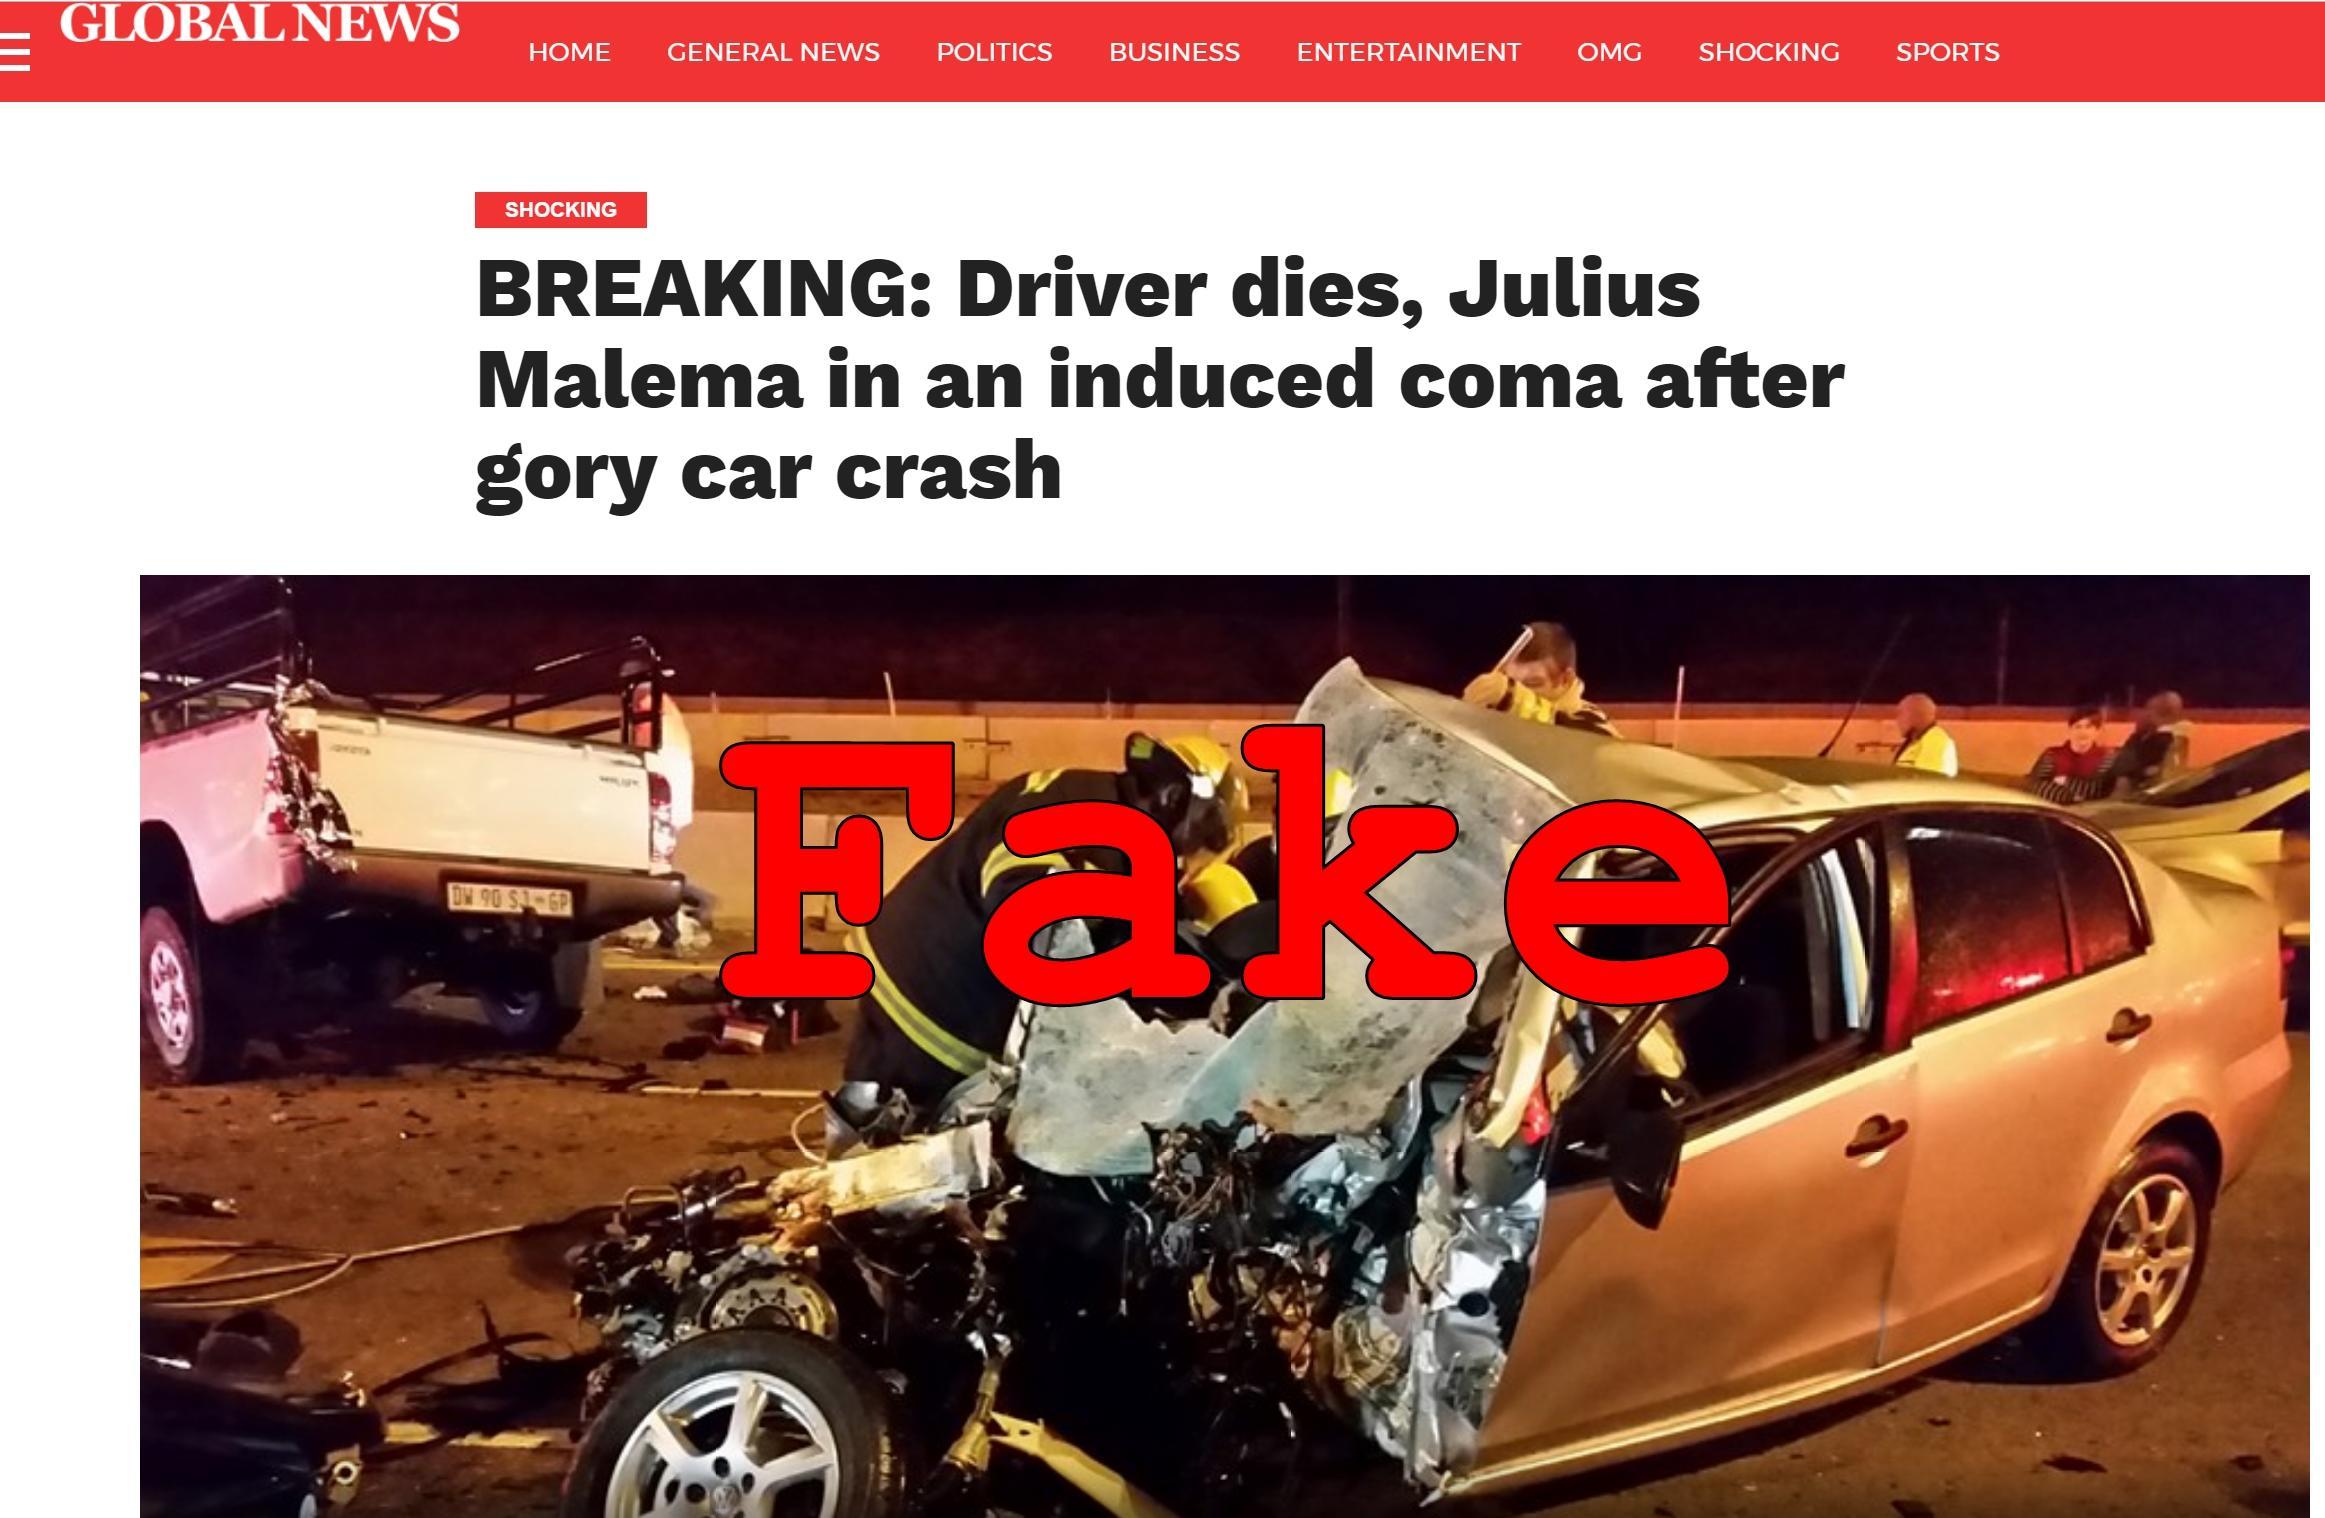 fake news: julius malema not in a coma after car crash, driver not